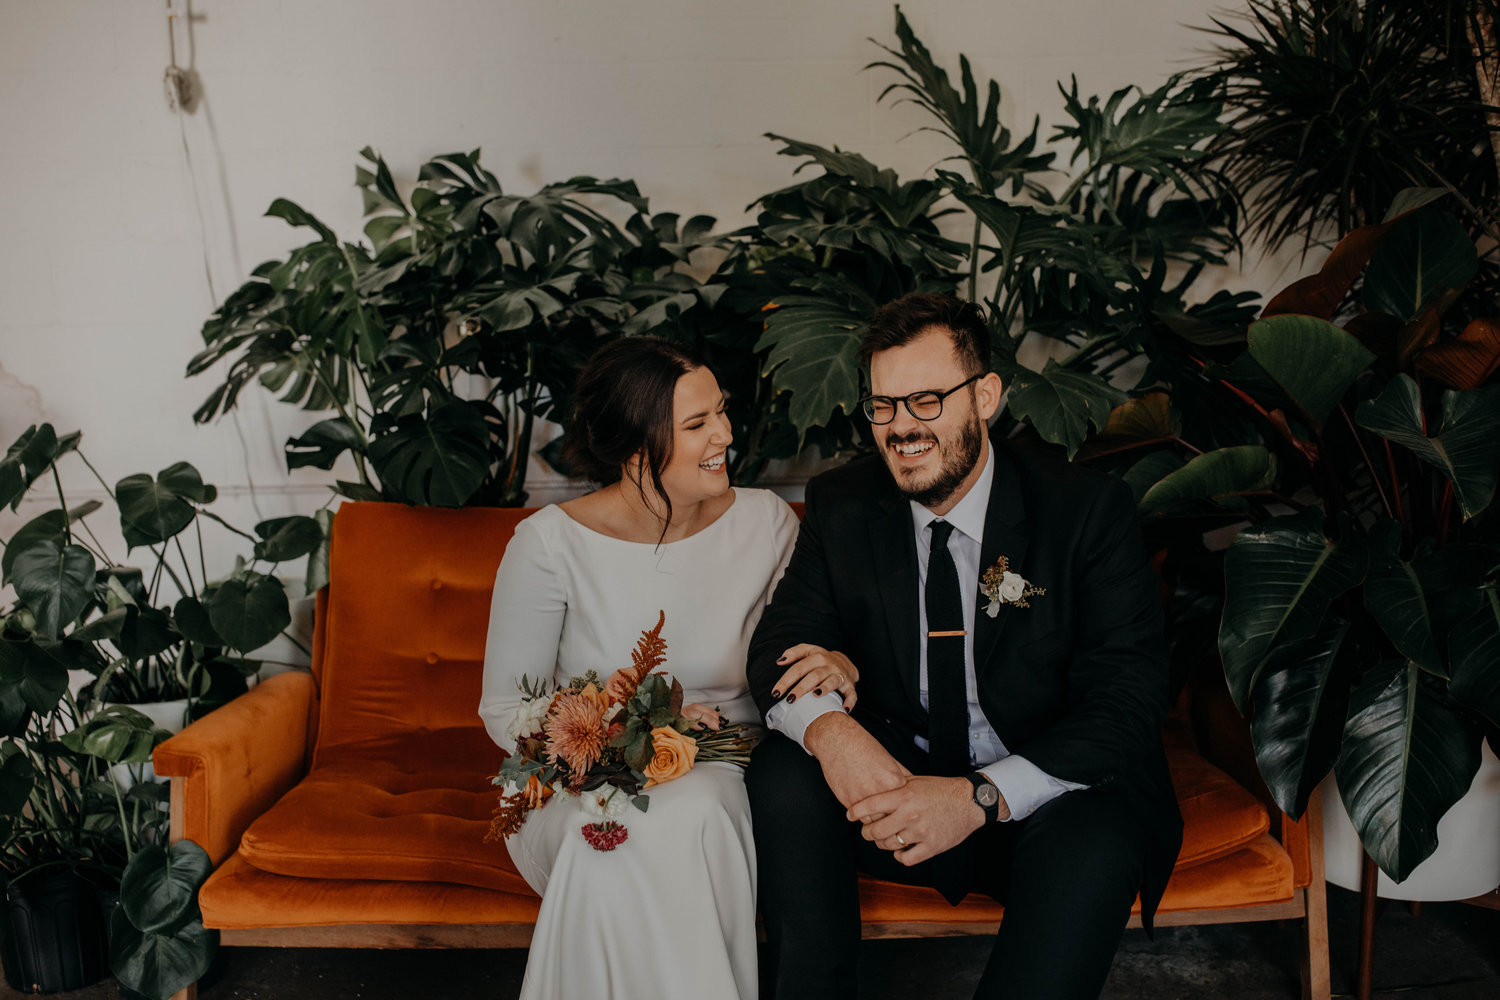 Fern+shop+Cincinnati+intimate+wedding+ohio+wedding+photographer+grace+e+jones+photography232.jpg